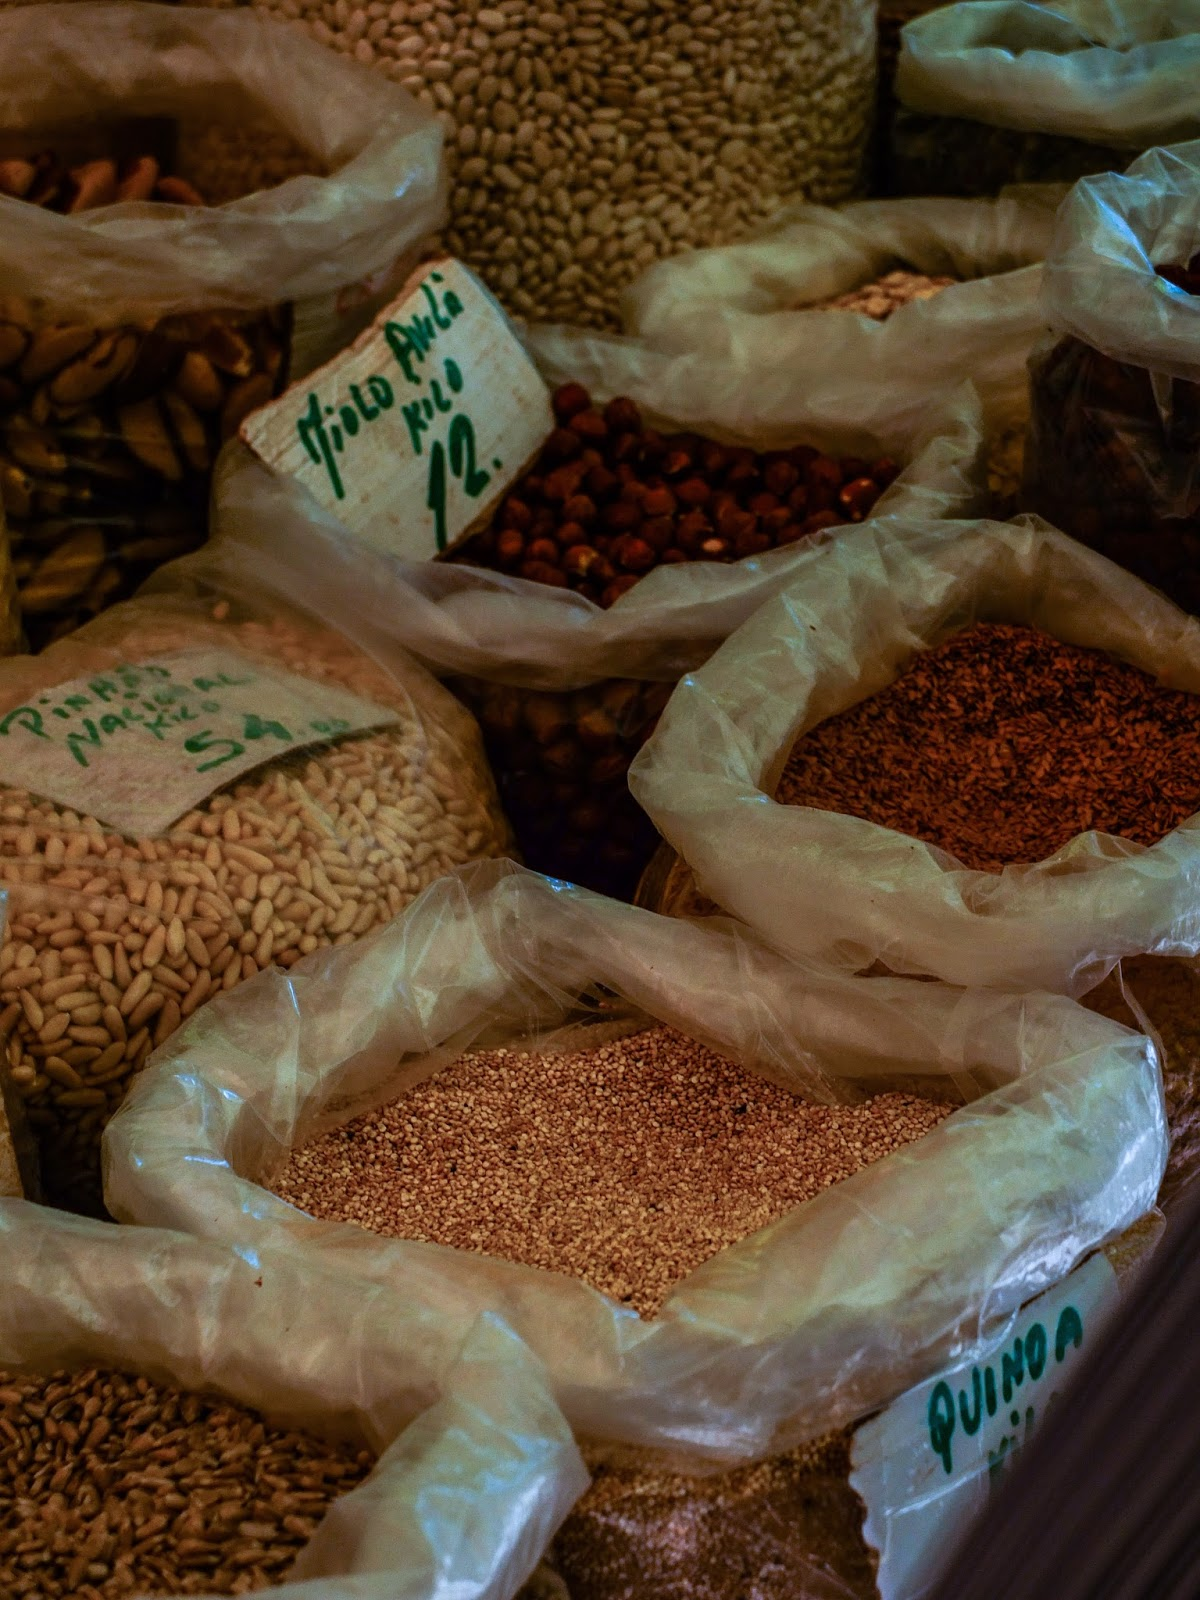 Quinoa and other grains in bags at a market in Porto, Portugal.